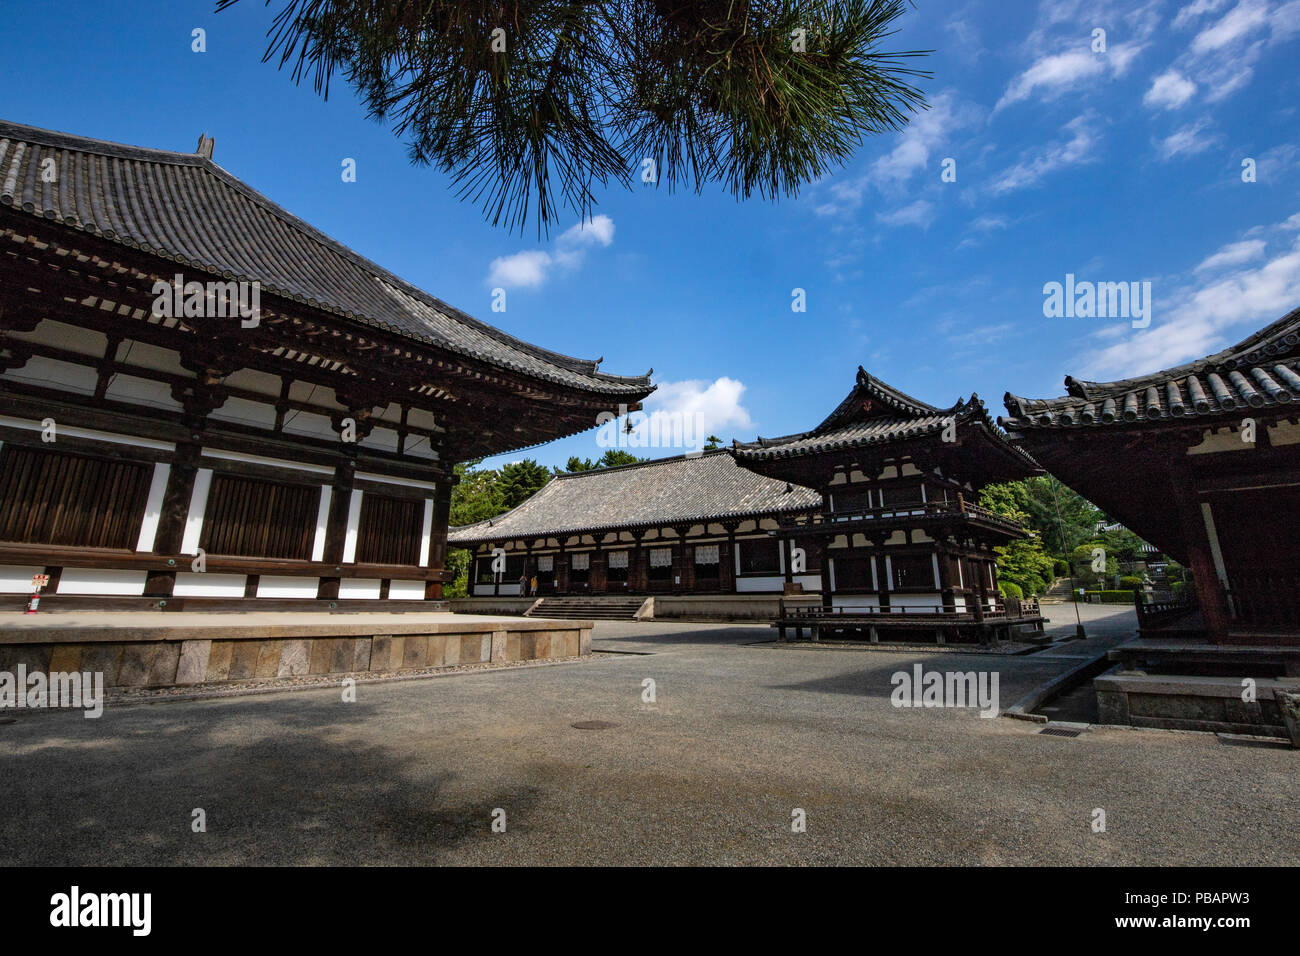 Toshodai-ji Temple was founded by Ganjin - a Chinese priest invited to Japan by the emperor to train priests and teach Buddhism so its influence propa - Stock Image